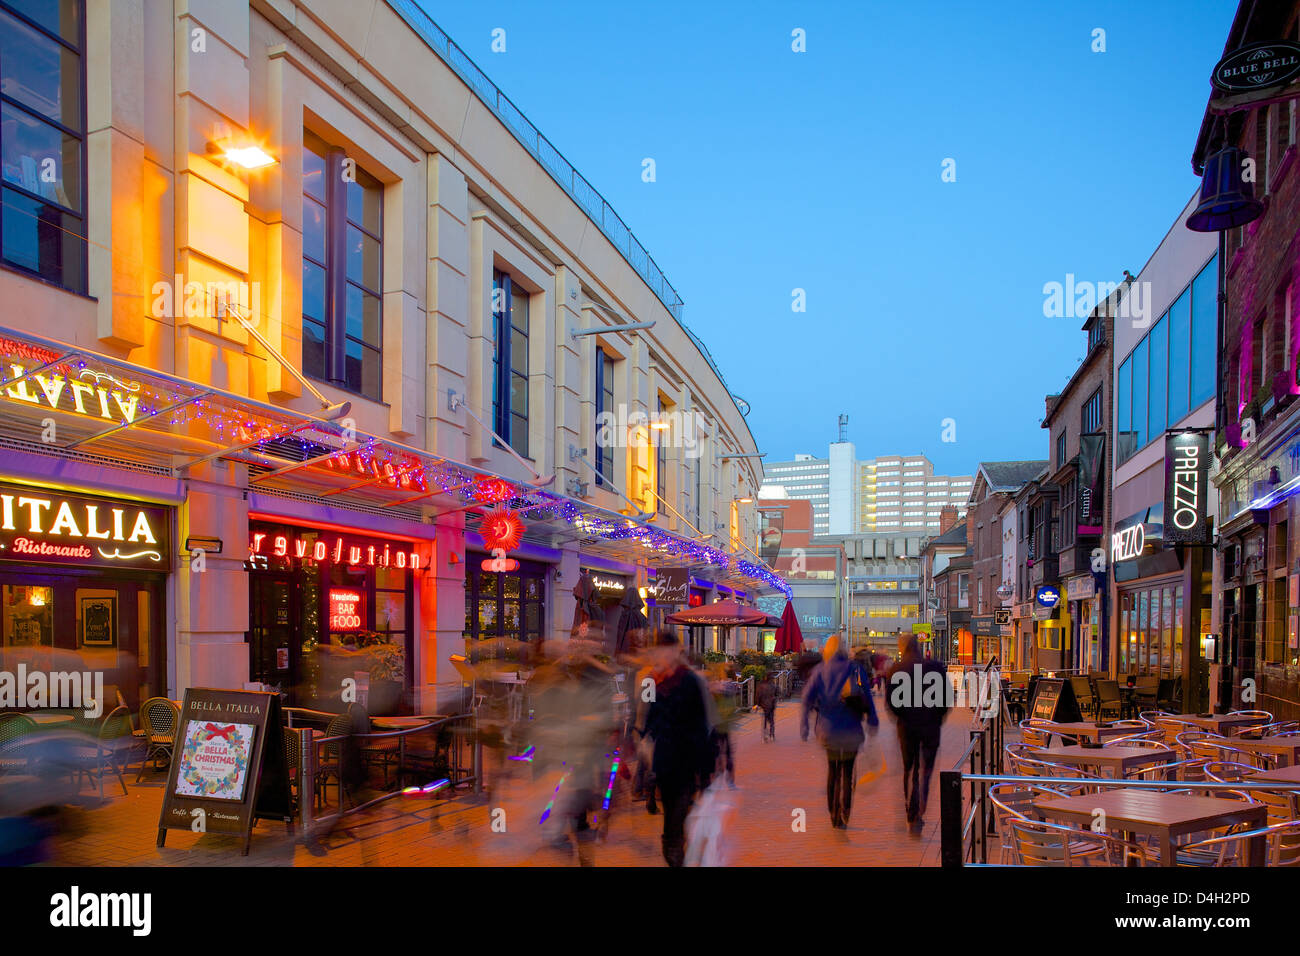 Forman Street at dusk, Nottingham, Nottinghamshire, England, UK - Stock Image